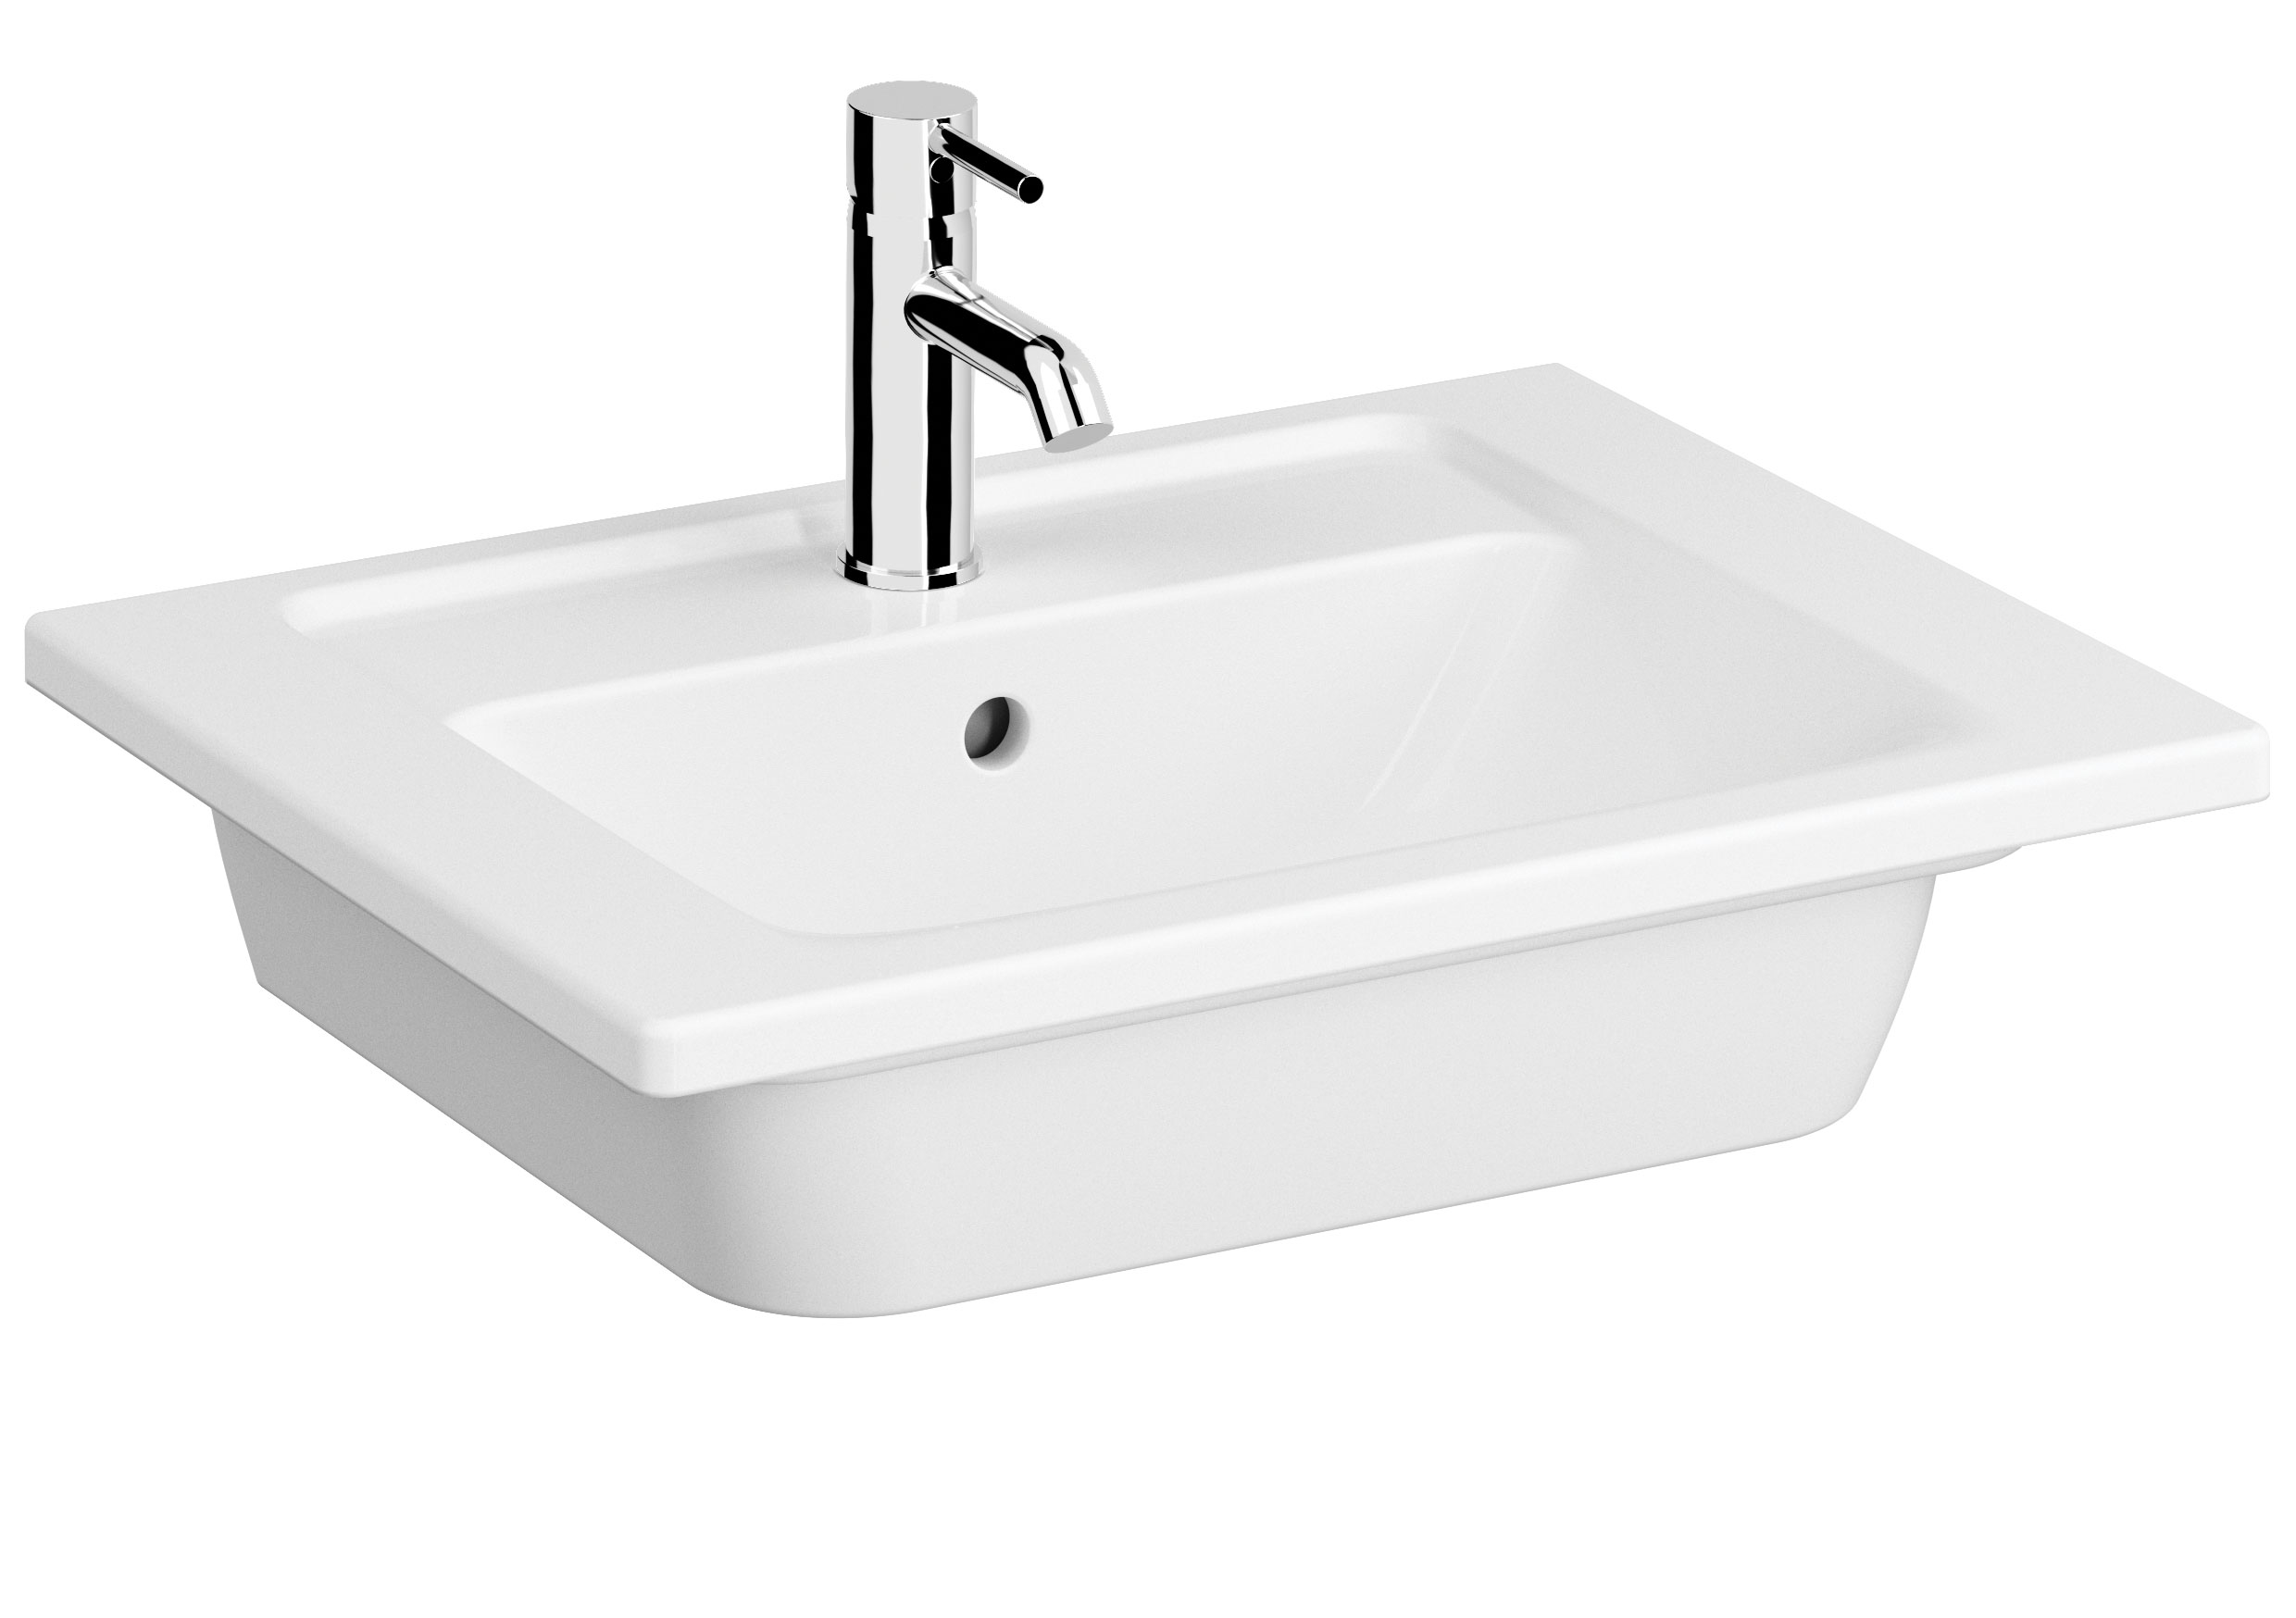 click on Vanity Basins image to enlarge